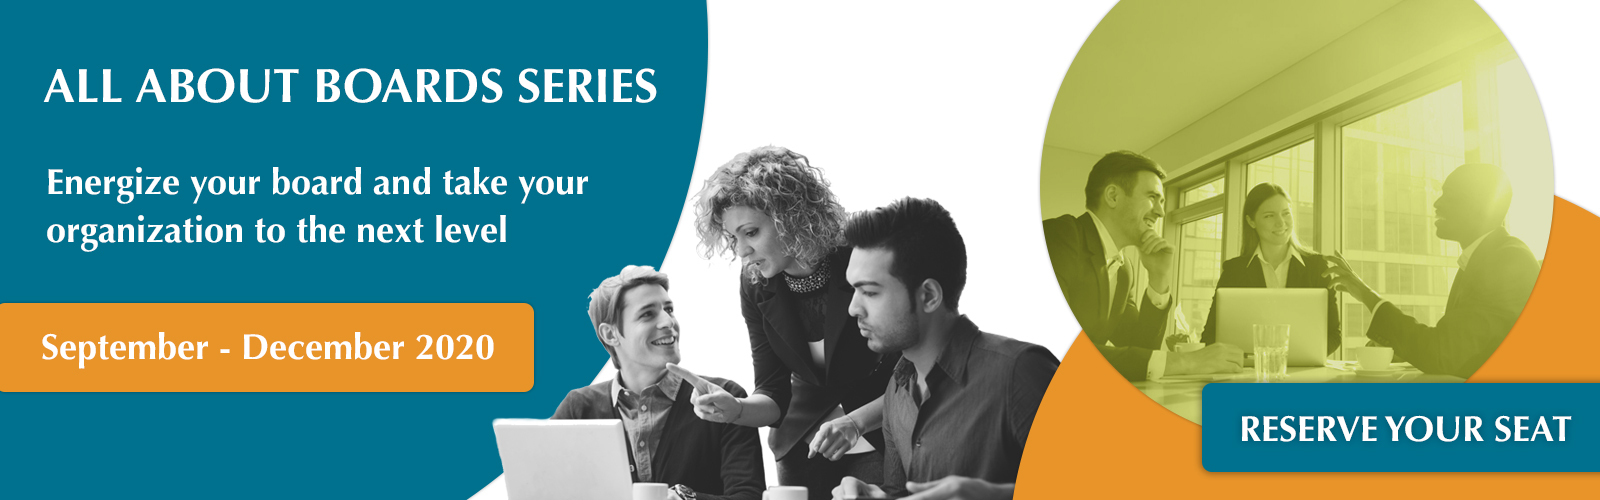 All About Boards Series: Energize your board and take your organization to the next level. Reserve your seat.